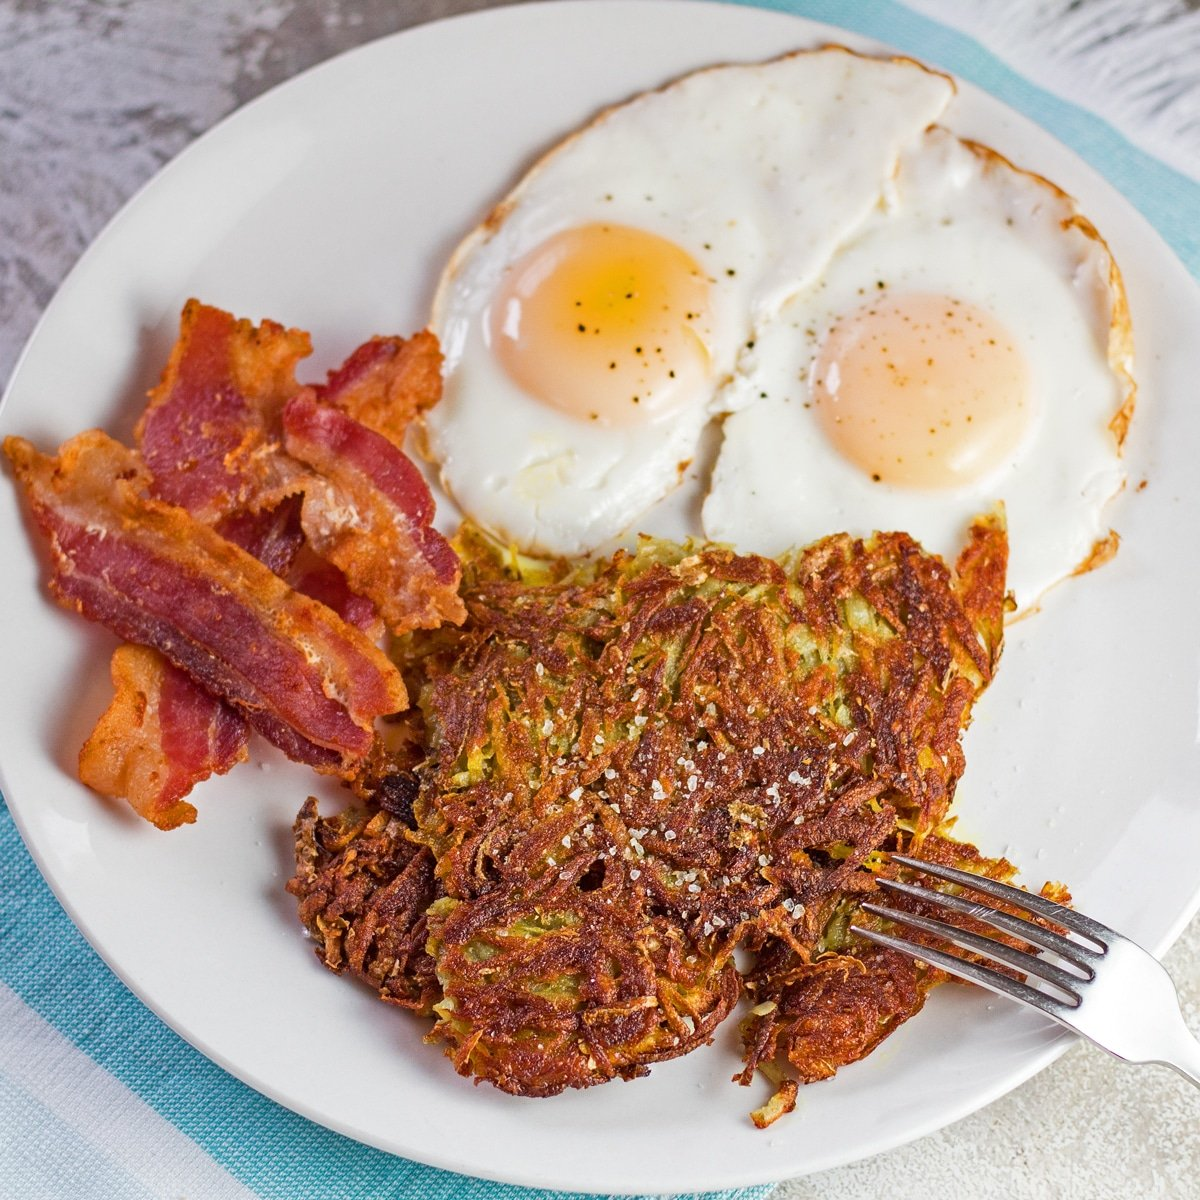 Large square angled overhead of the homemade hash browns plated in a 2 egg breakfast.